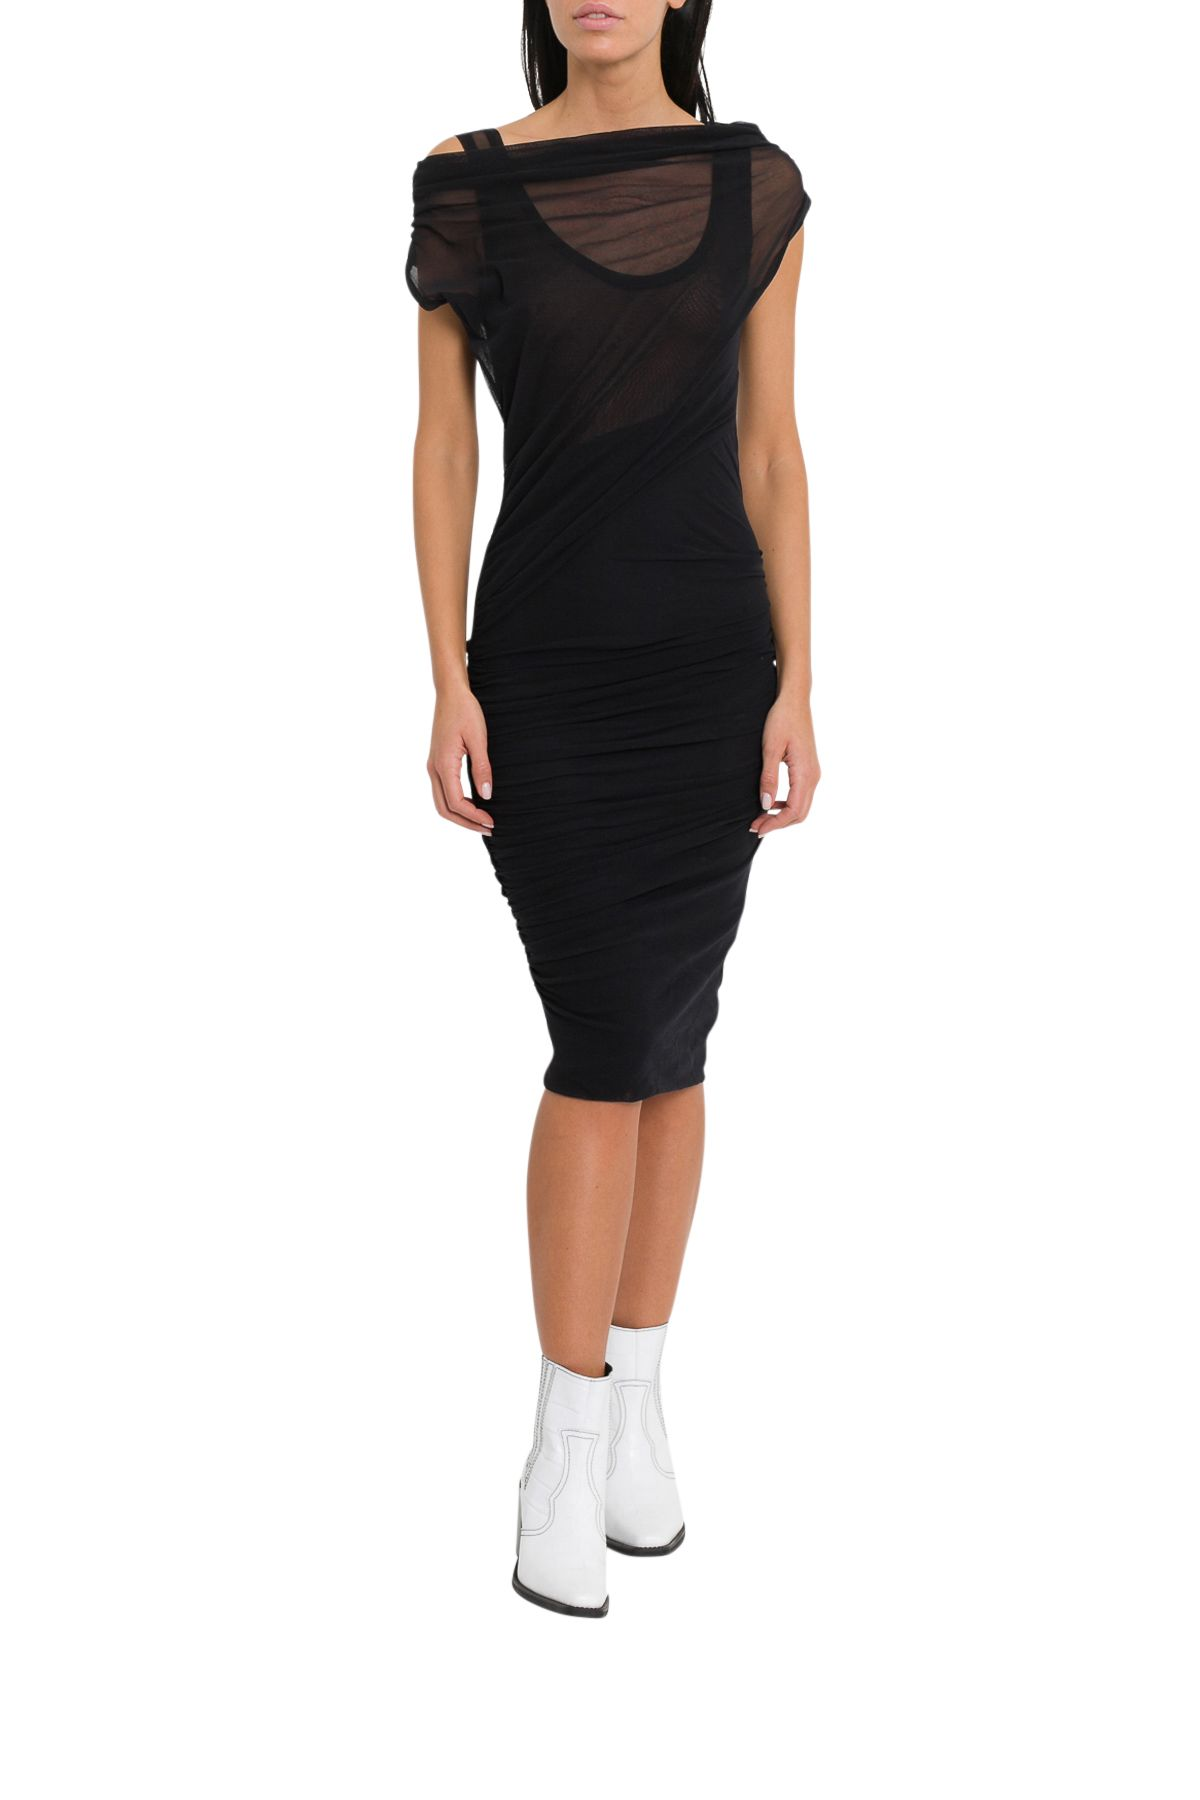 38e3fbeae78 MSGM Ruched Asymmetric Stretch-jersey Mini Dress With Sheer Effect - Nero  ...